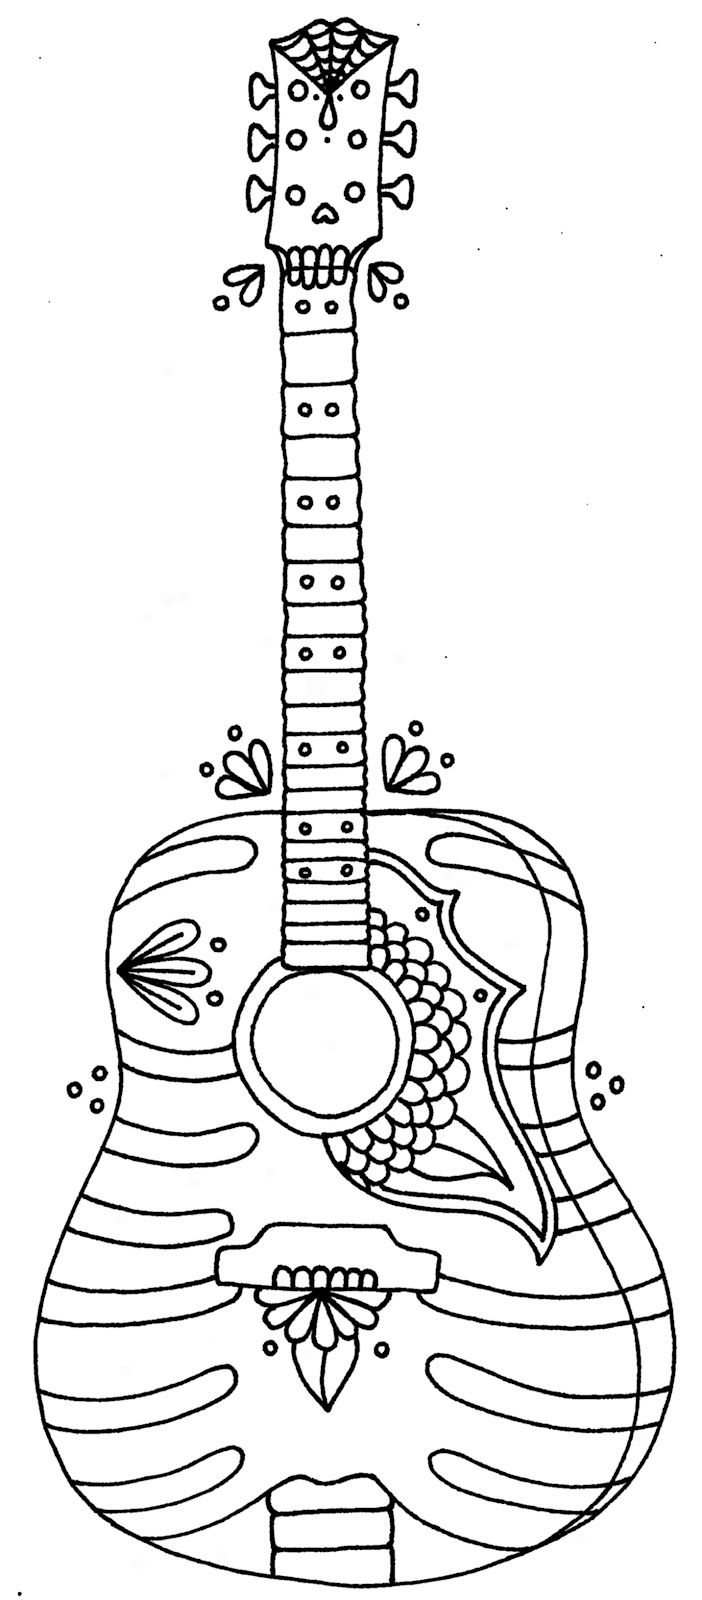 Guitar Coloring Pages 9 Summer Coloring Pages Printable Adult